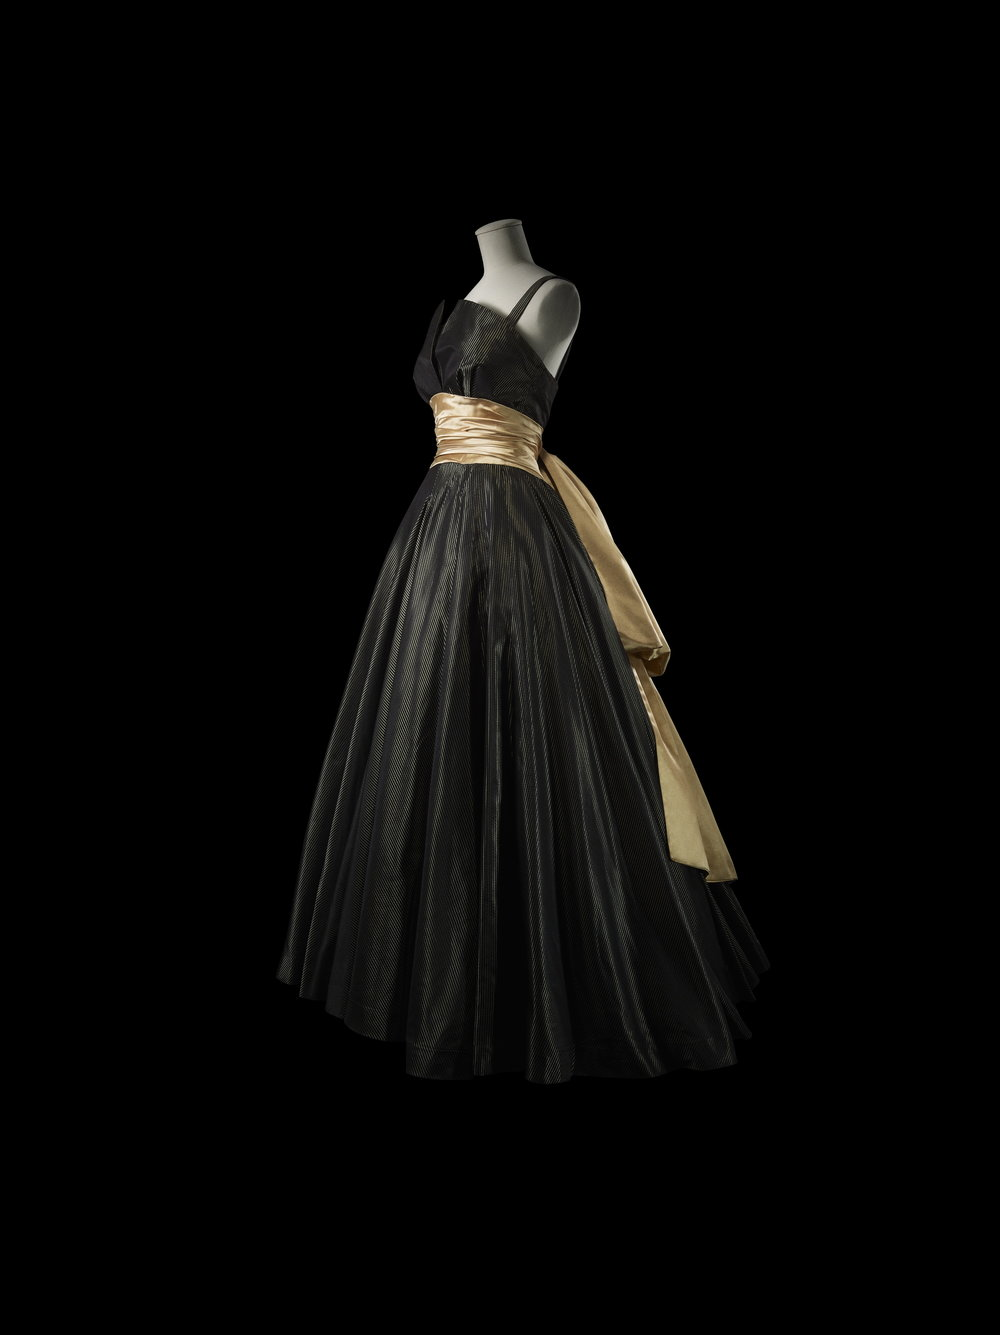 Isabelle Evening Dress (Spring-Summer 1948)——This evening dress with its voluptuous full skirt captures the essence of Dior's New Look.